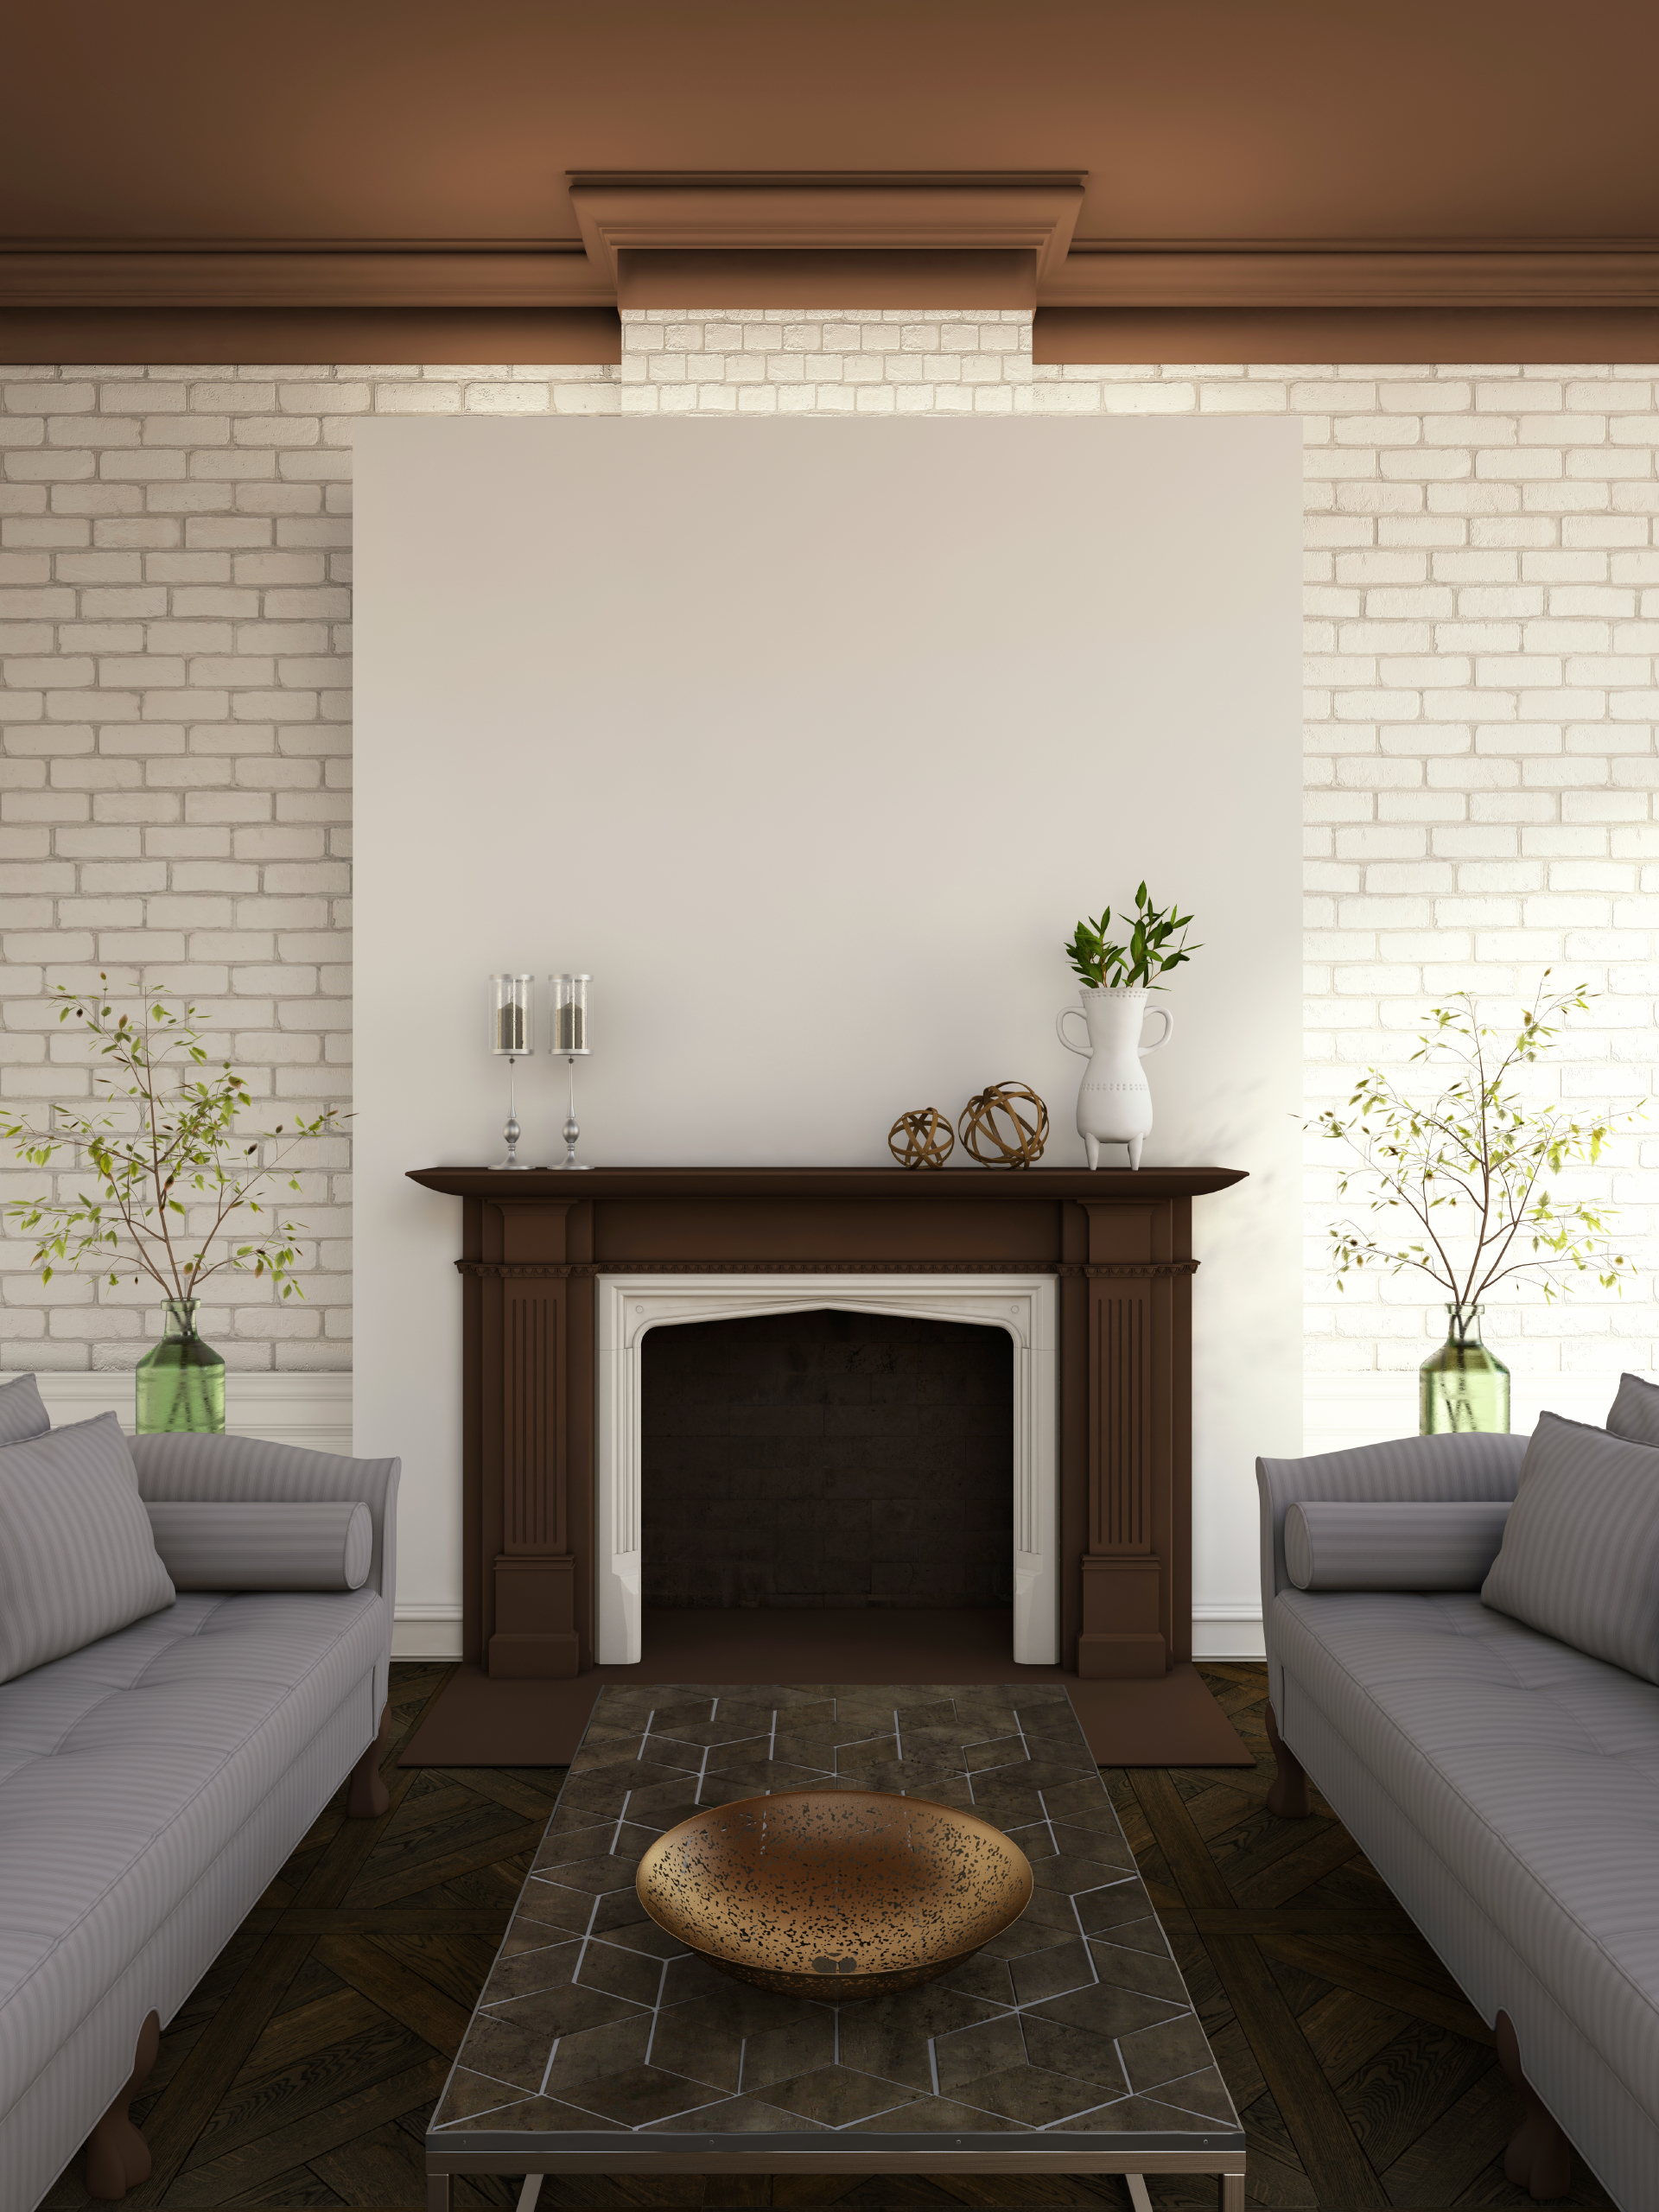 13 Transformative Fireplace Makeover Ideas